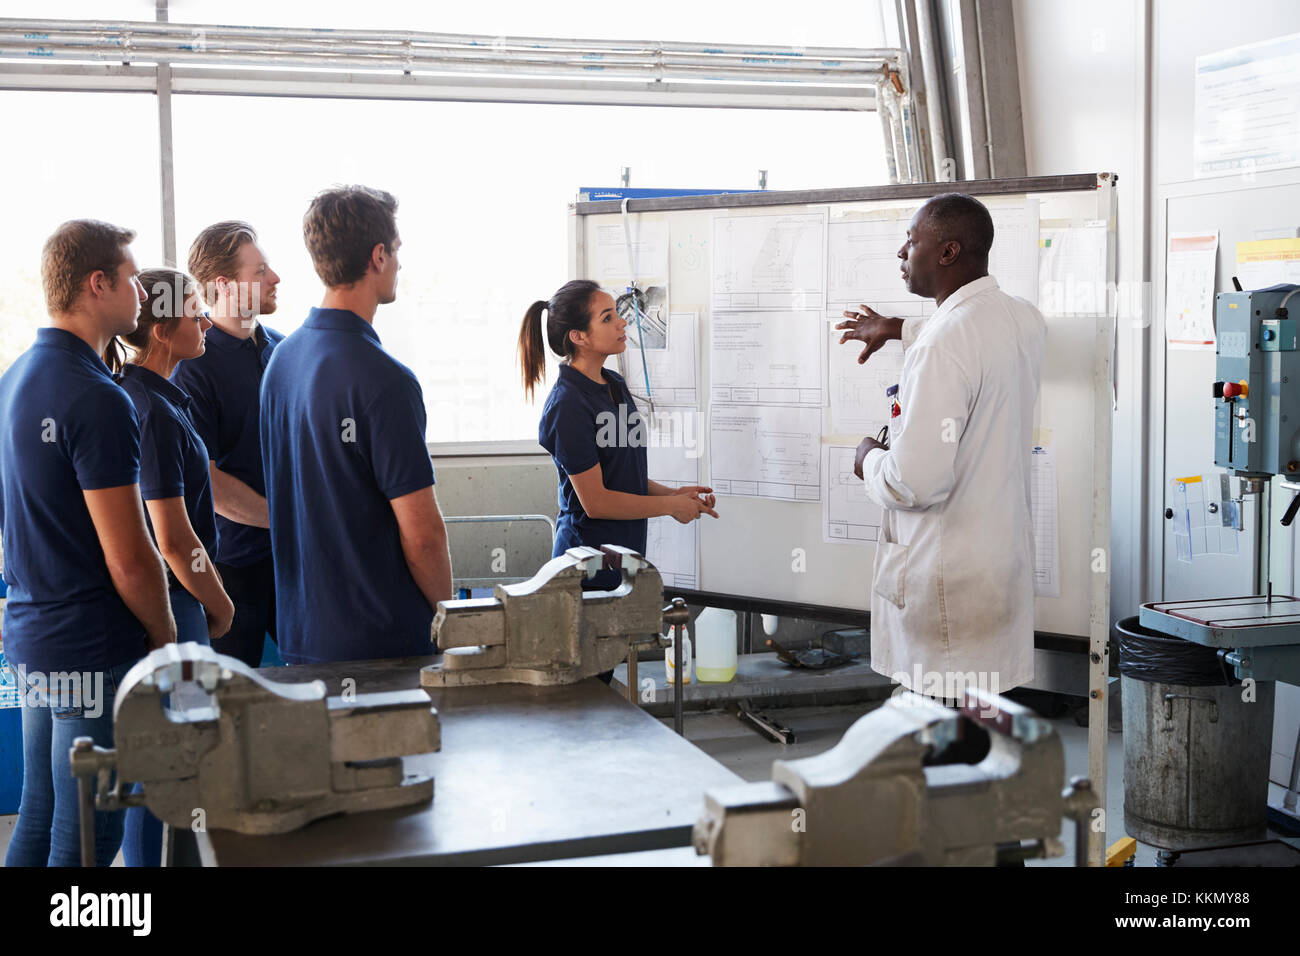 Engineer and female apprentice presenting at whiteboard - Stock Image